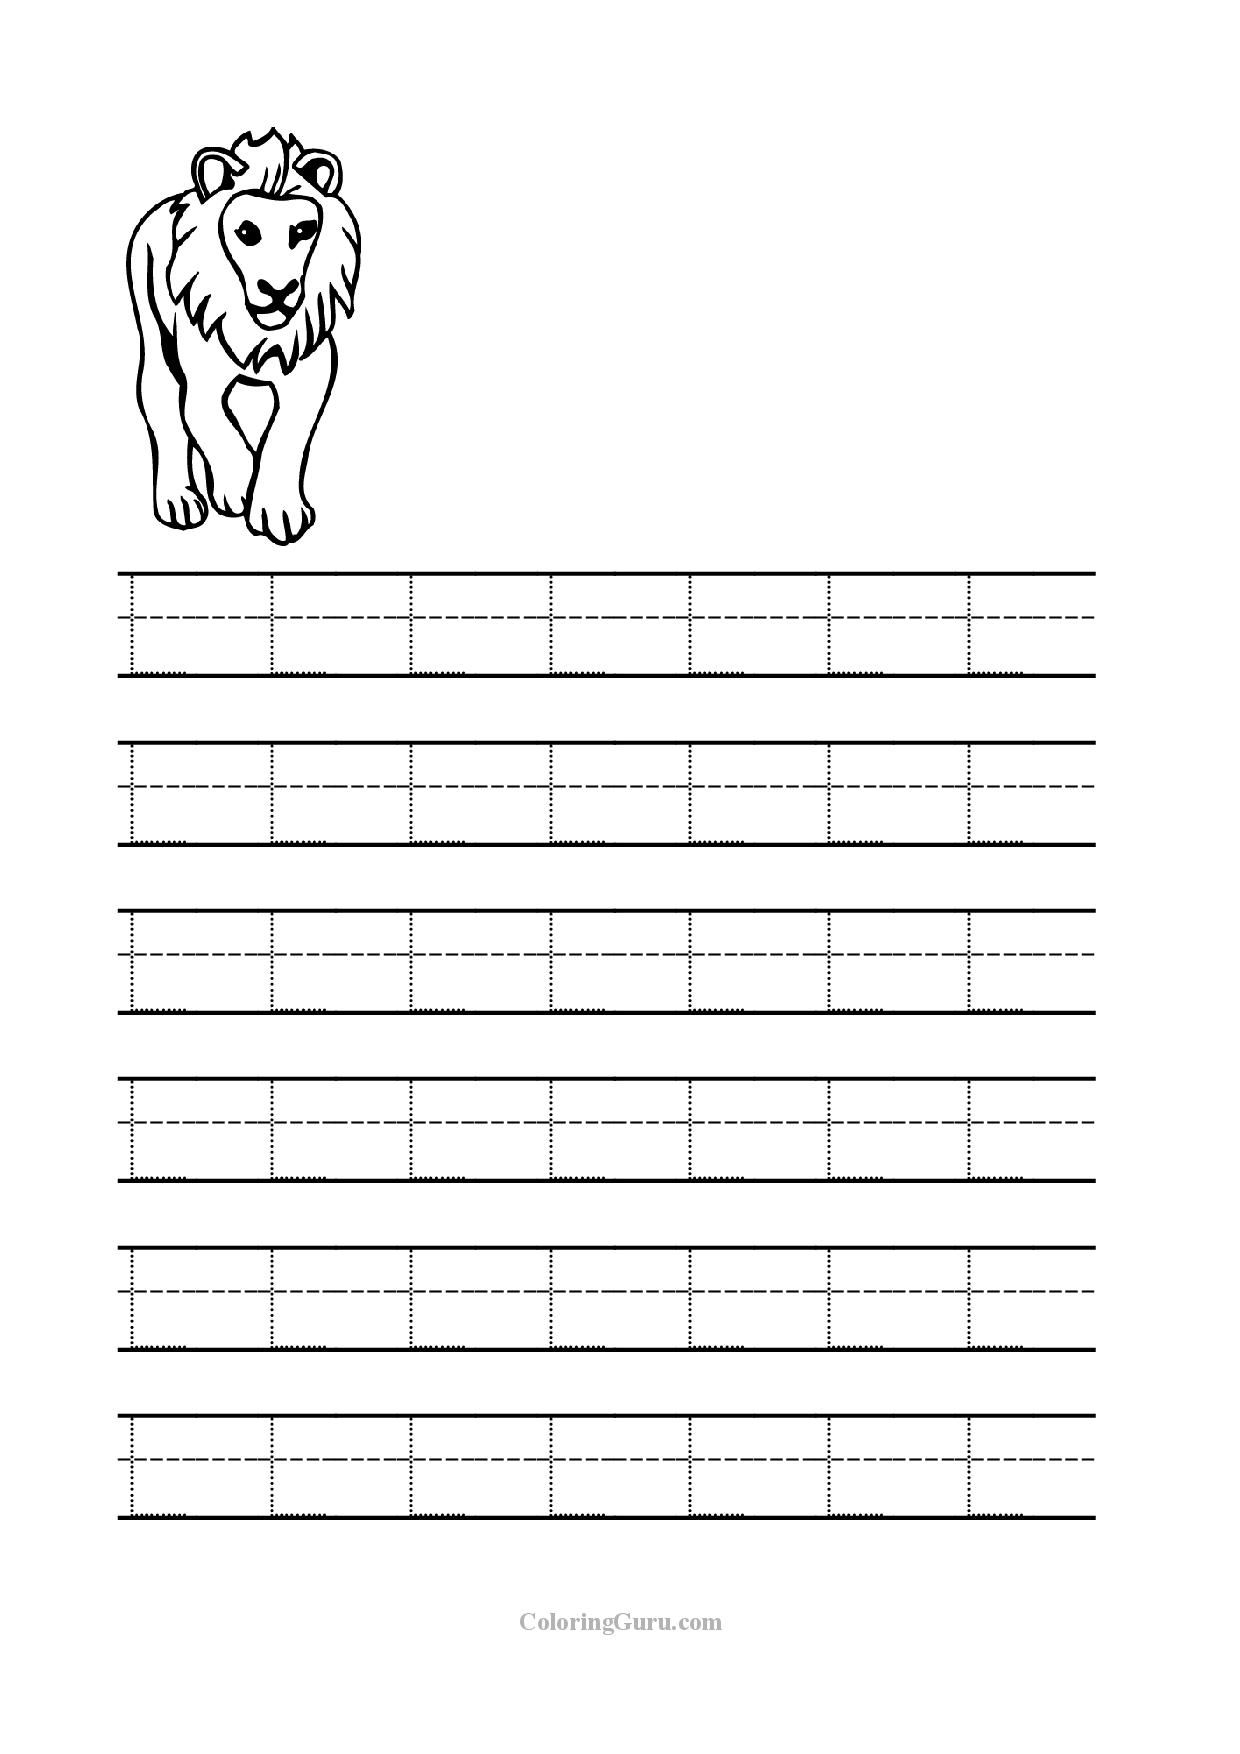 Free Printable Tracing Letter L Worksheets For Preschool within Letter L Worksheets For Nursery